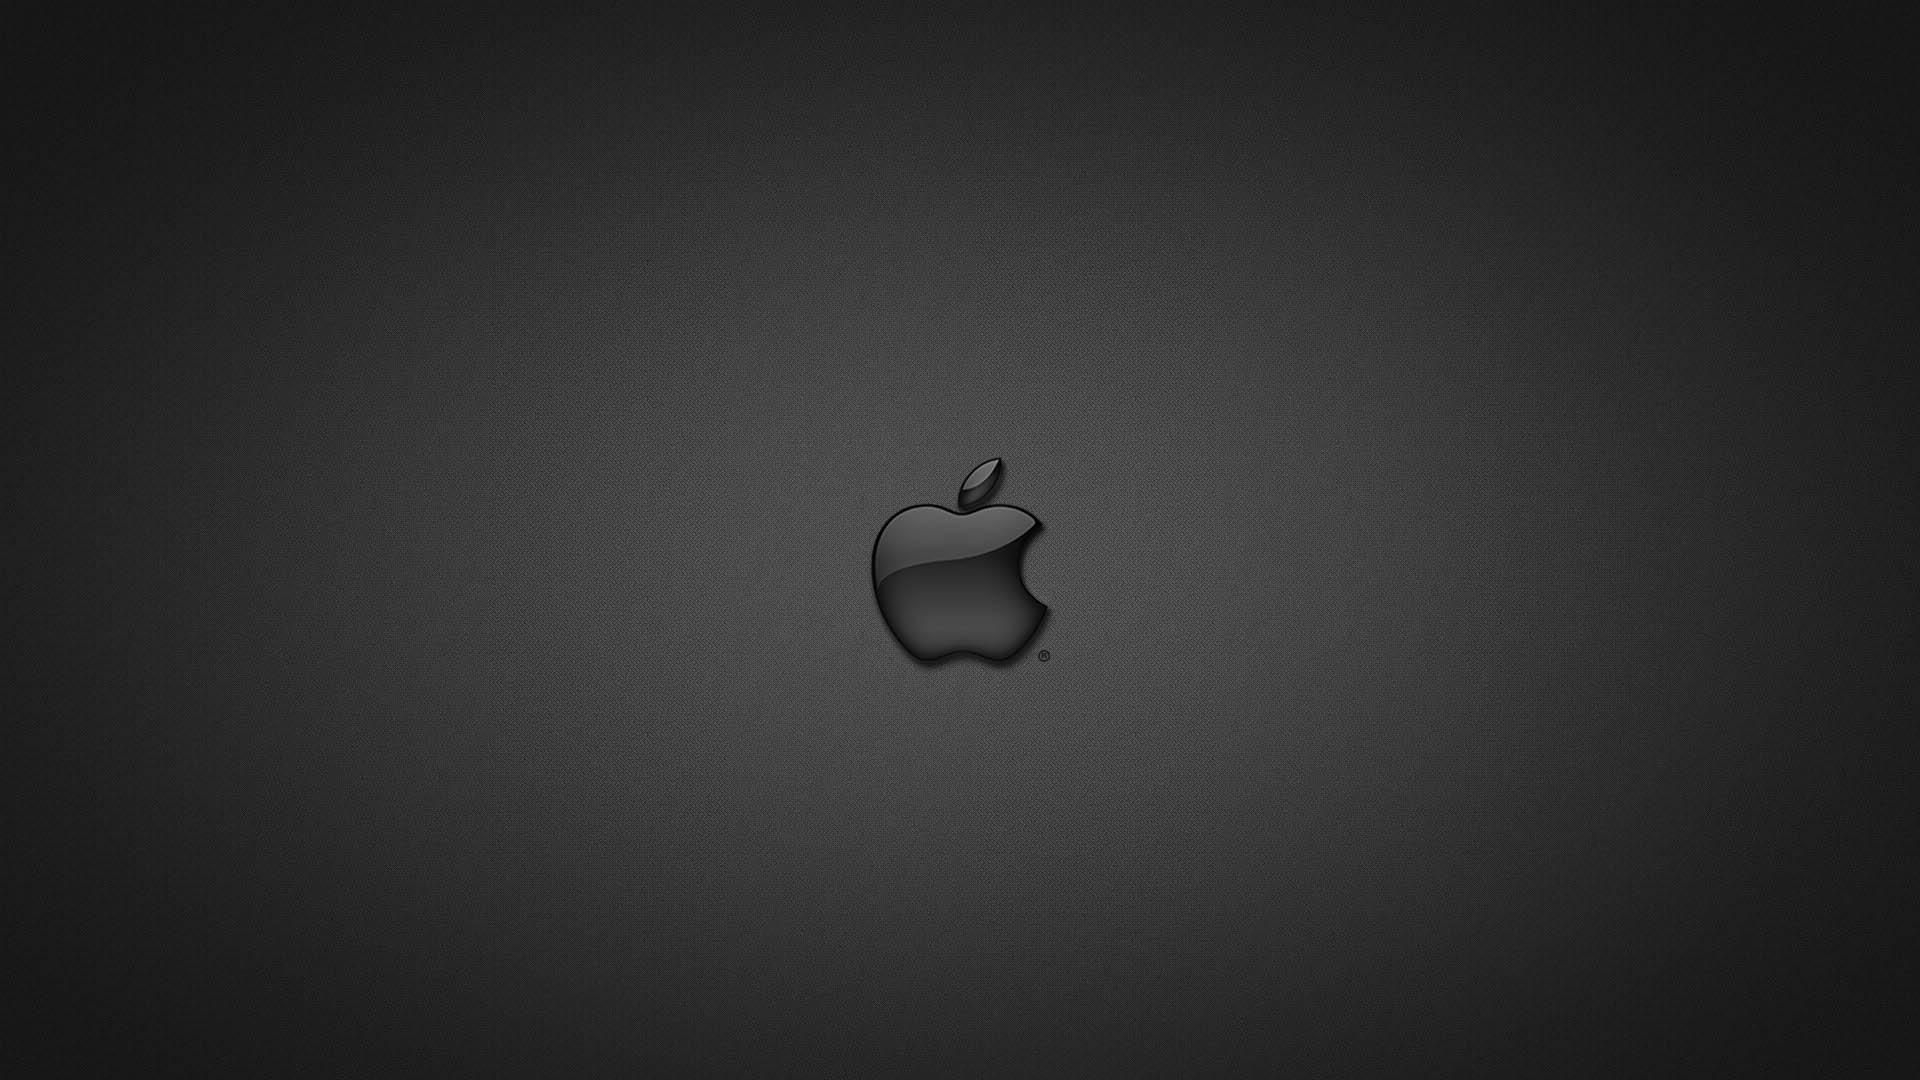 Apple wallpapers hd 1080p wallpaper cave apple for Immagini apple hd